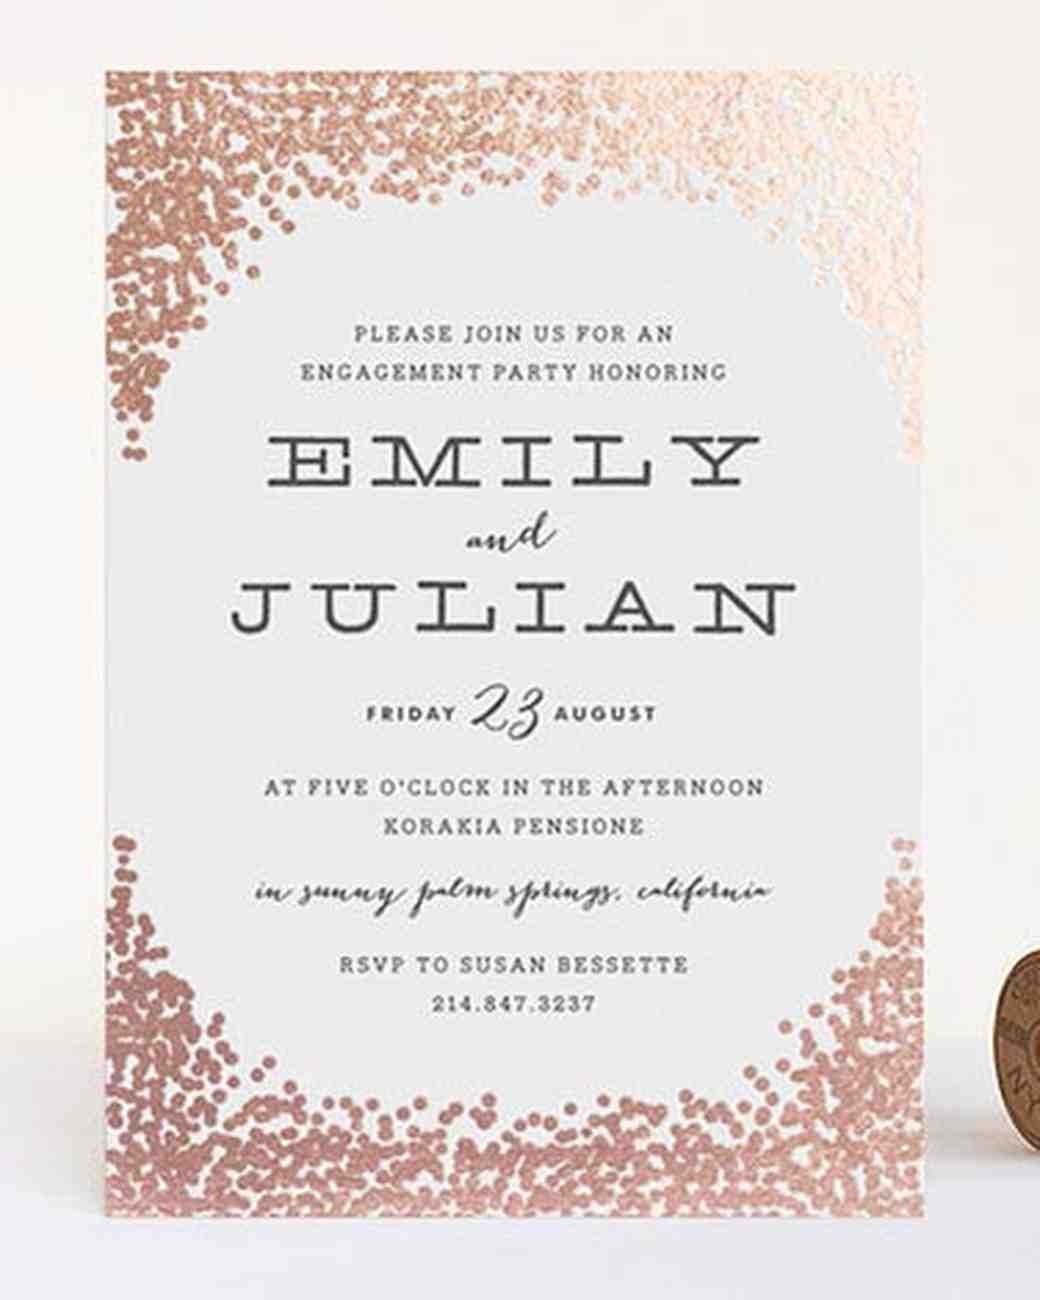 15 Engagement Party Invitations – Photo Engagement Party Invitations